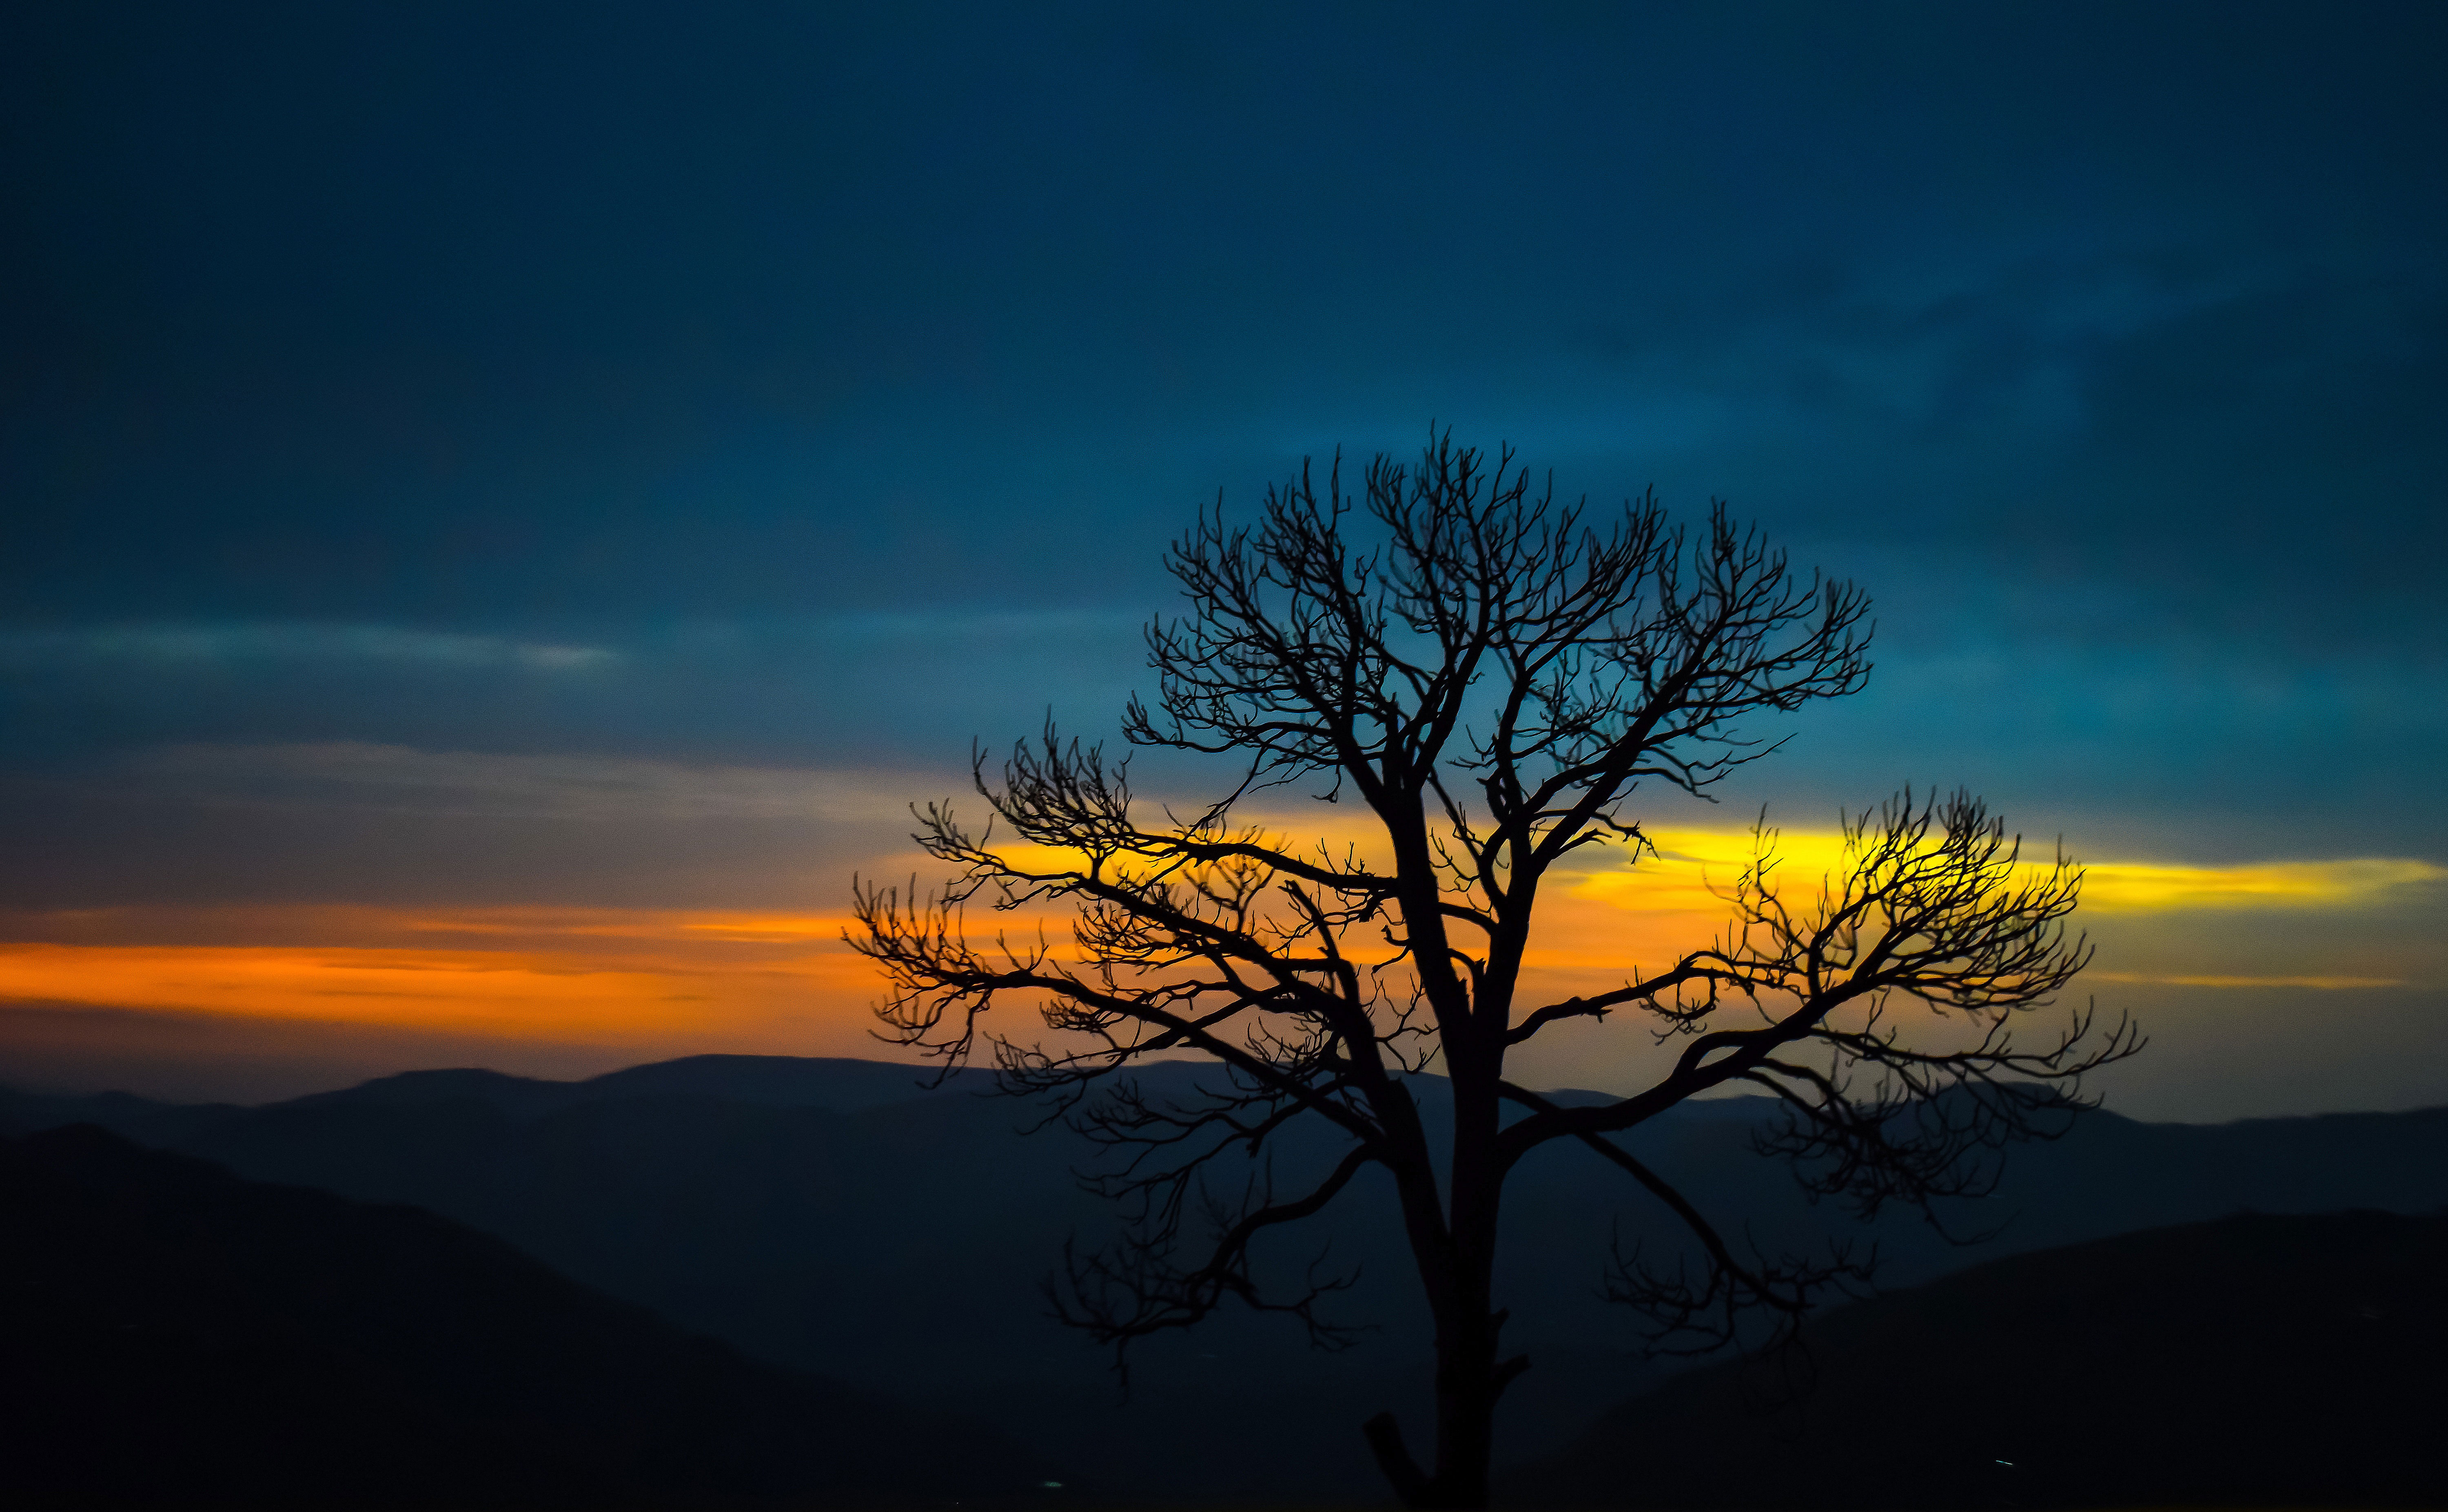 Nature Trees Mountains Hd 4k Sunset Forest Hd Nature 4k Wallpapers